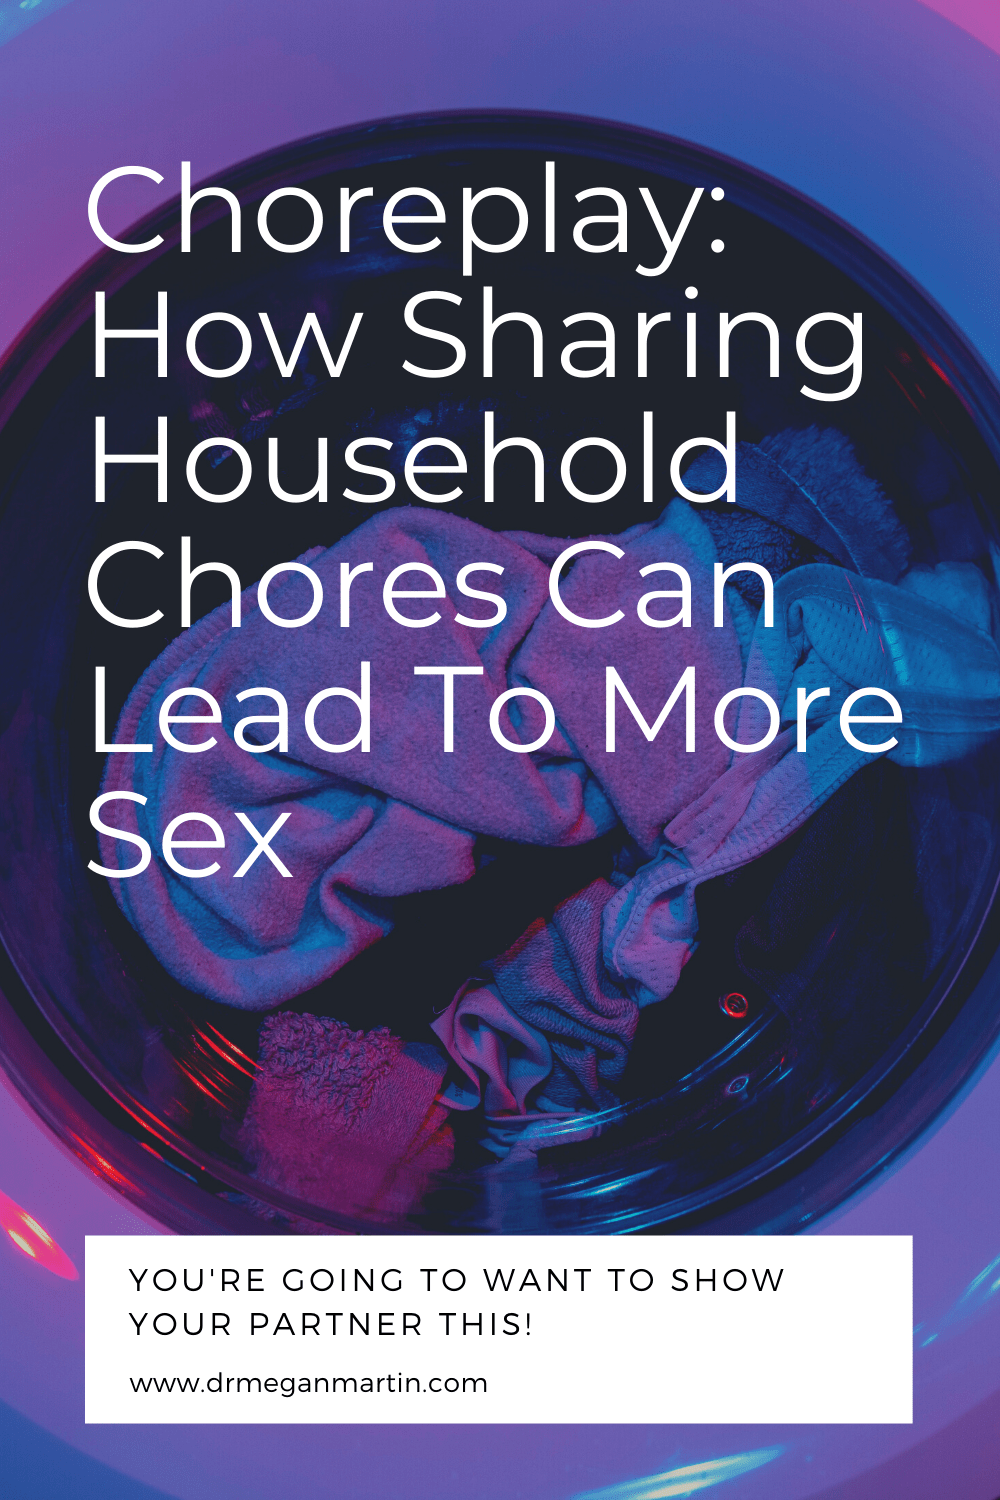 sharing household chores leads to more sex